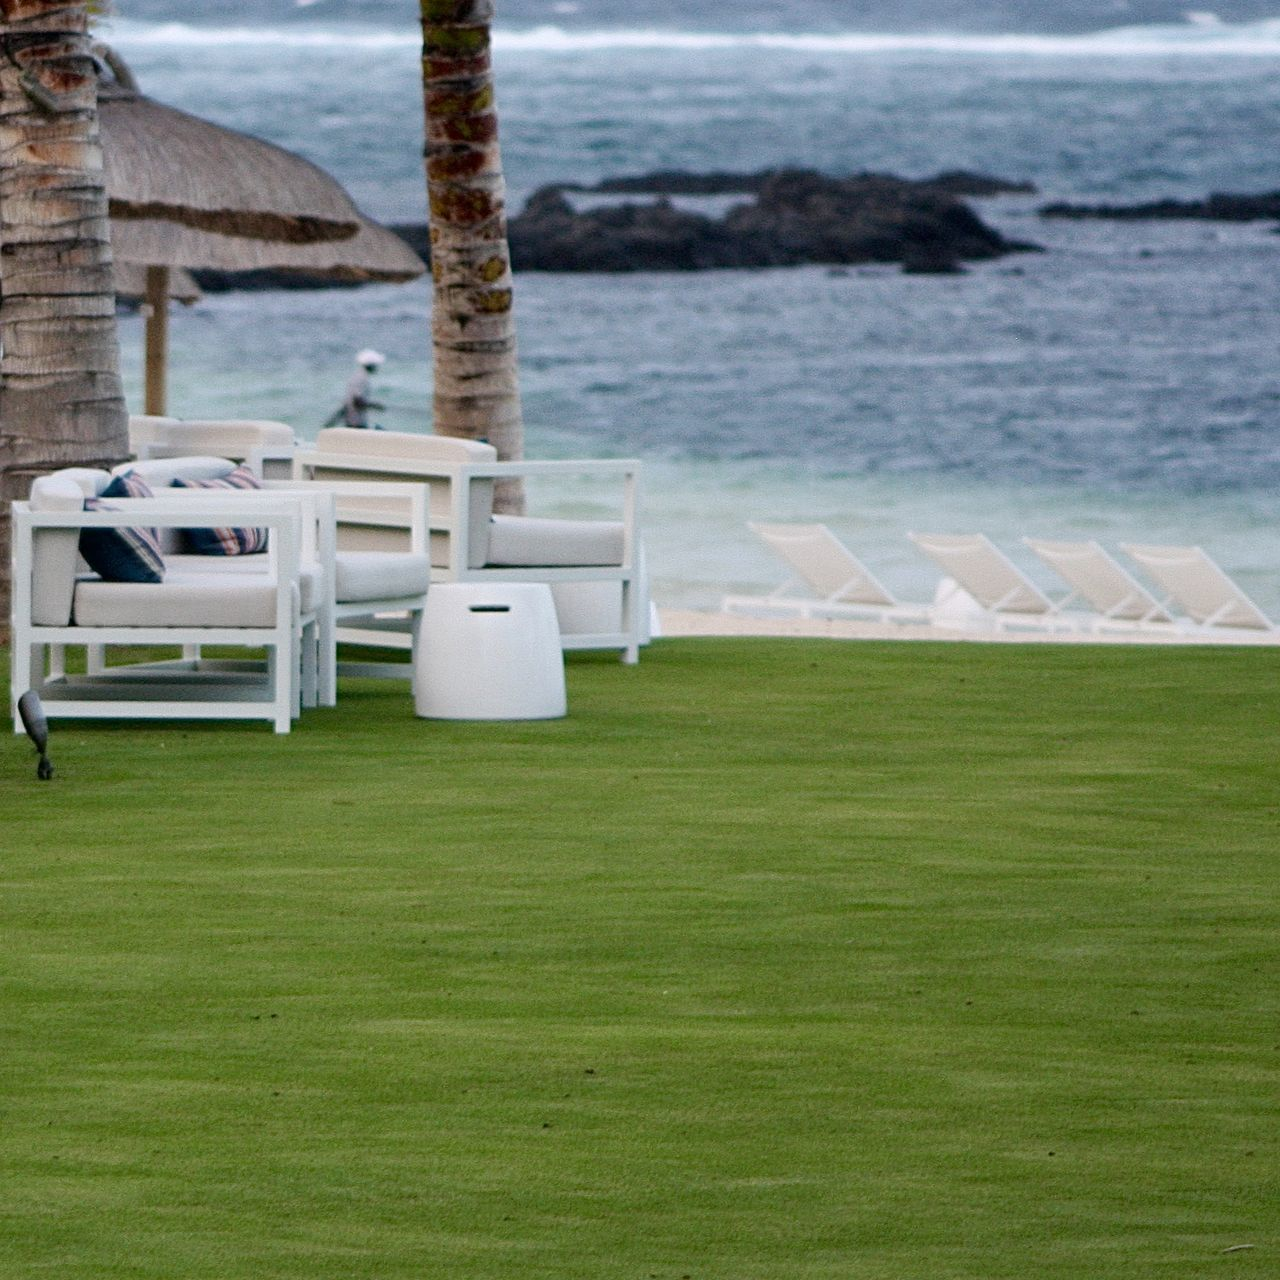 Beach Chairs Close-up Exterior Gardening Grass Green Greenery Holiday Lawn Mauritius Nature Ocean Outdoors Pantone Colors By GIZMON Personal Perspective Relaxing Rocks Sea Sunbeds Take Your Place Water Wave White